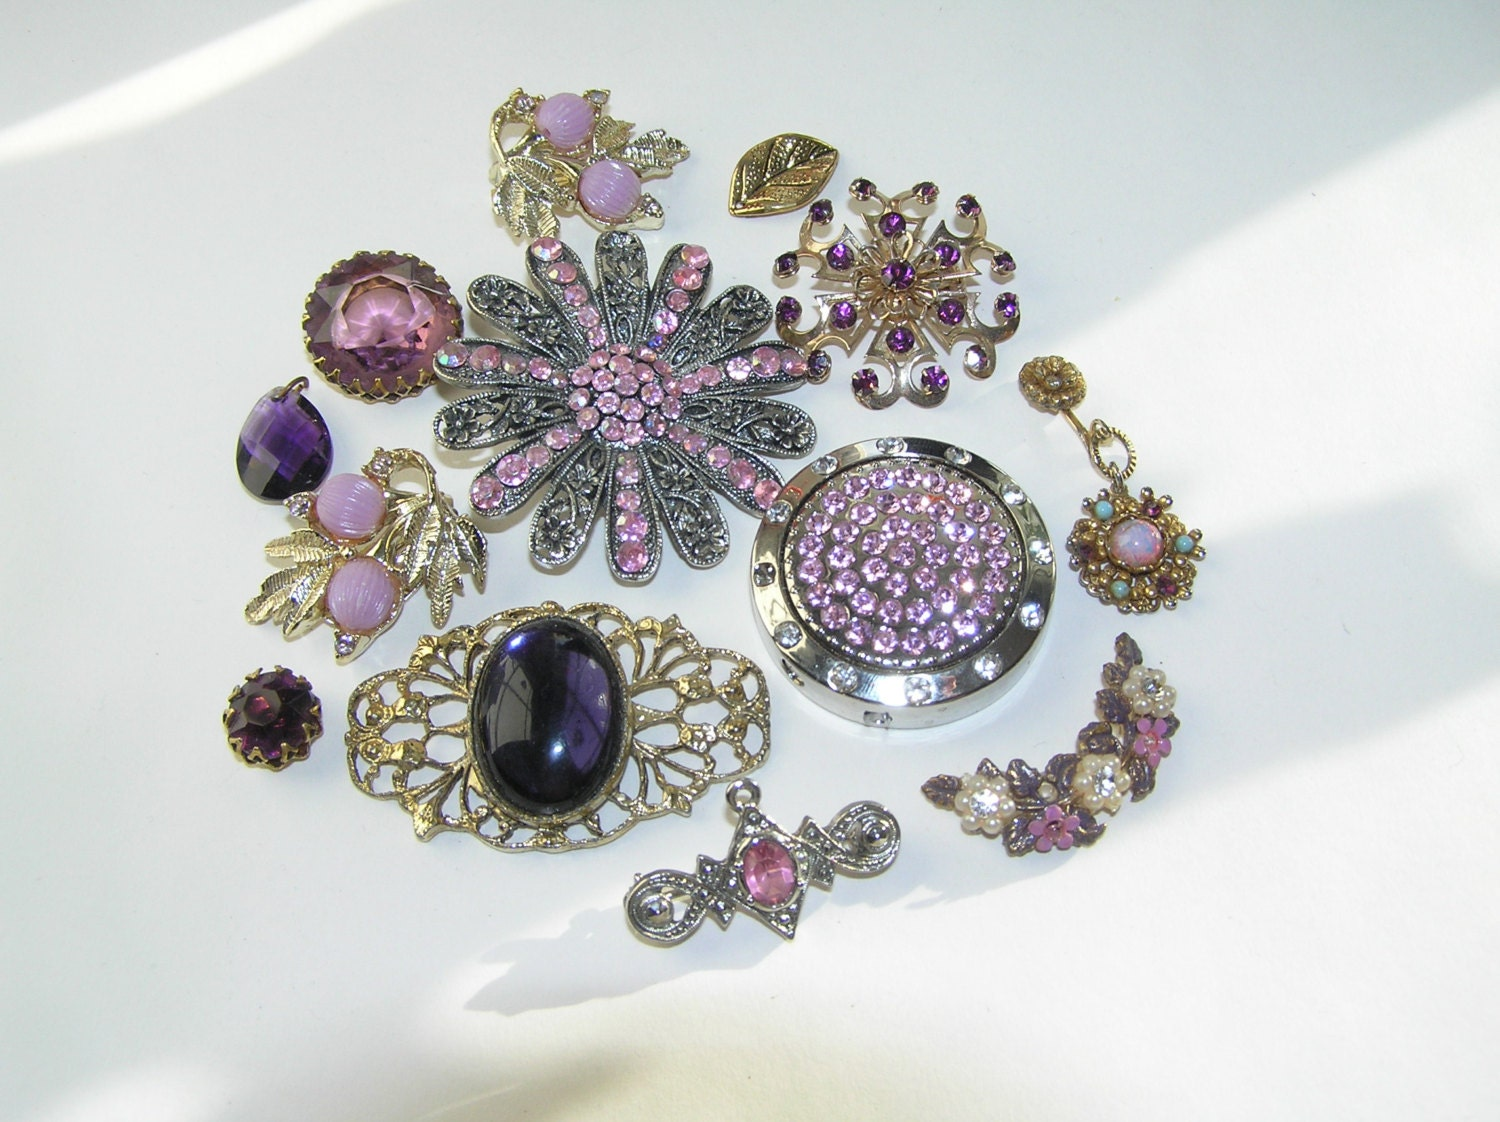 Vintage Jewellery Wedding Bouquets : Vintage jewelry lot bridal brooch bouquet by poppyhillvintage